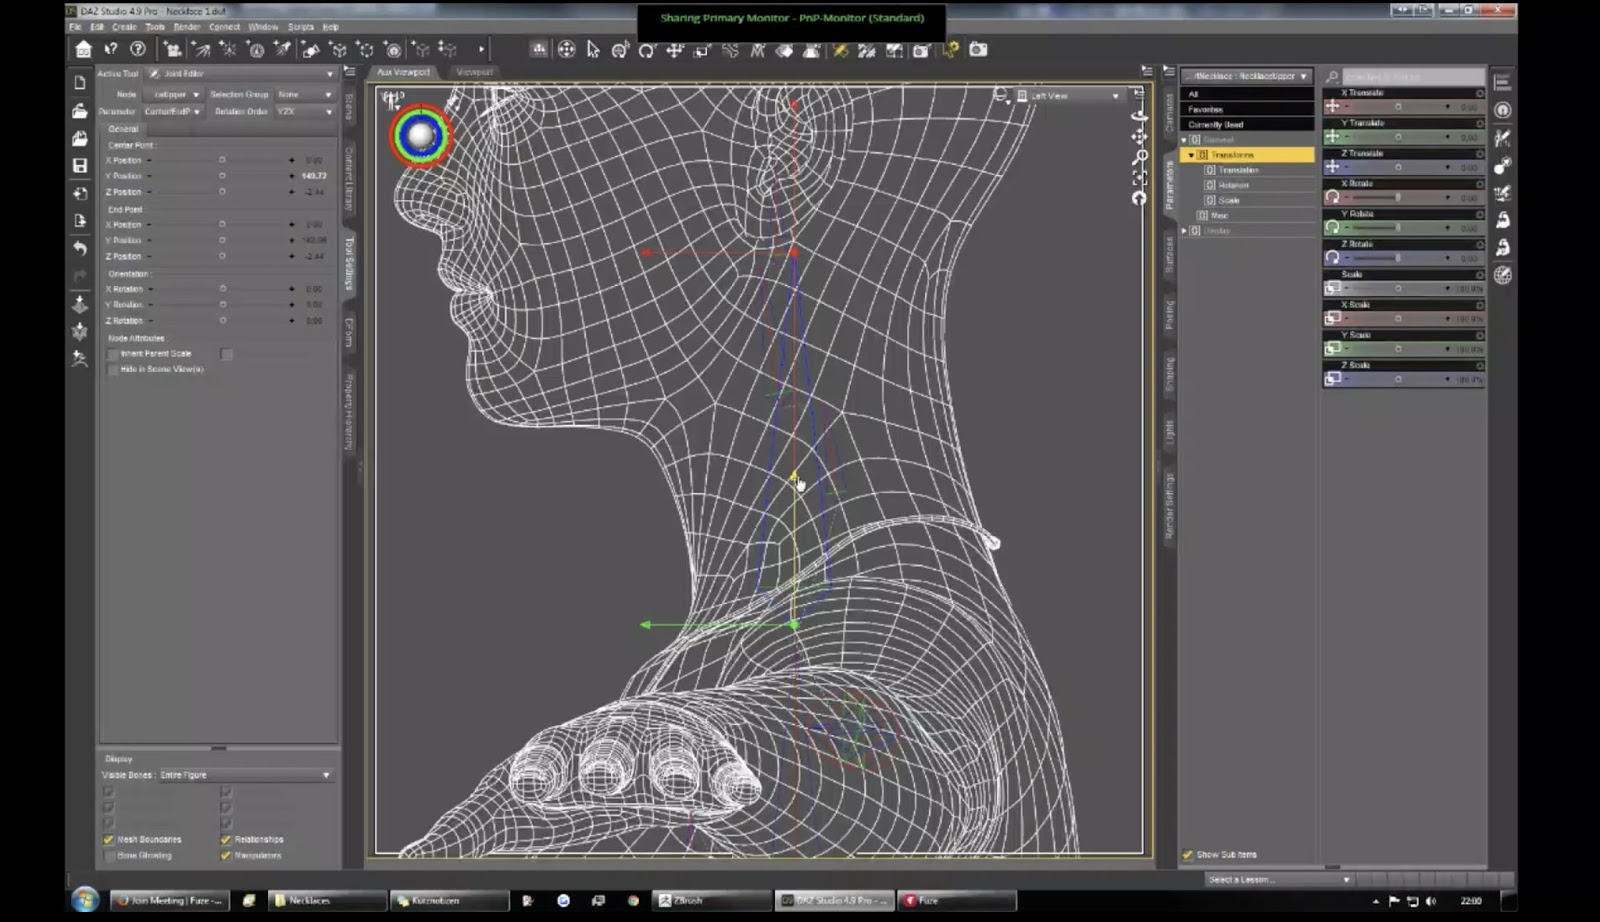 Download DAZ Studio 3 For FREE!: Daz Studio Masterclass